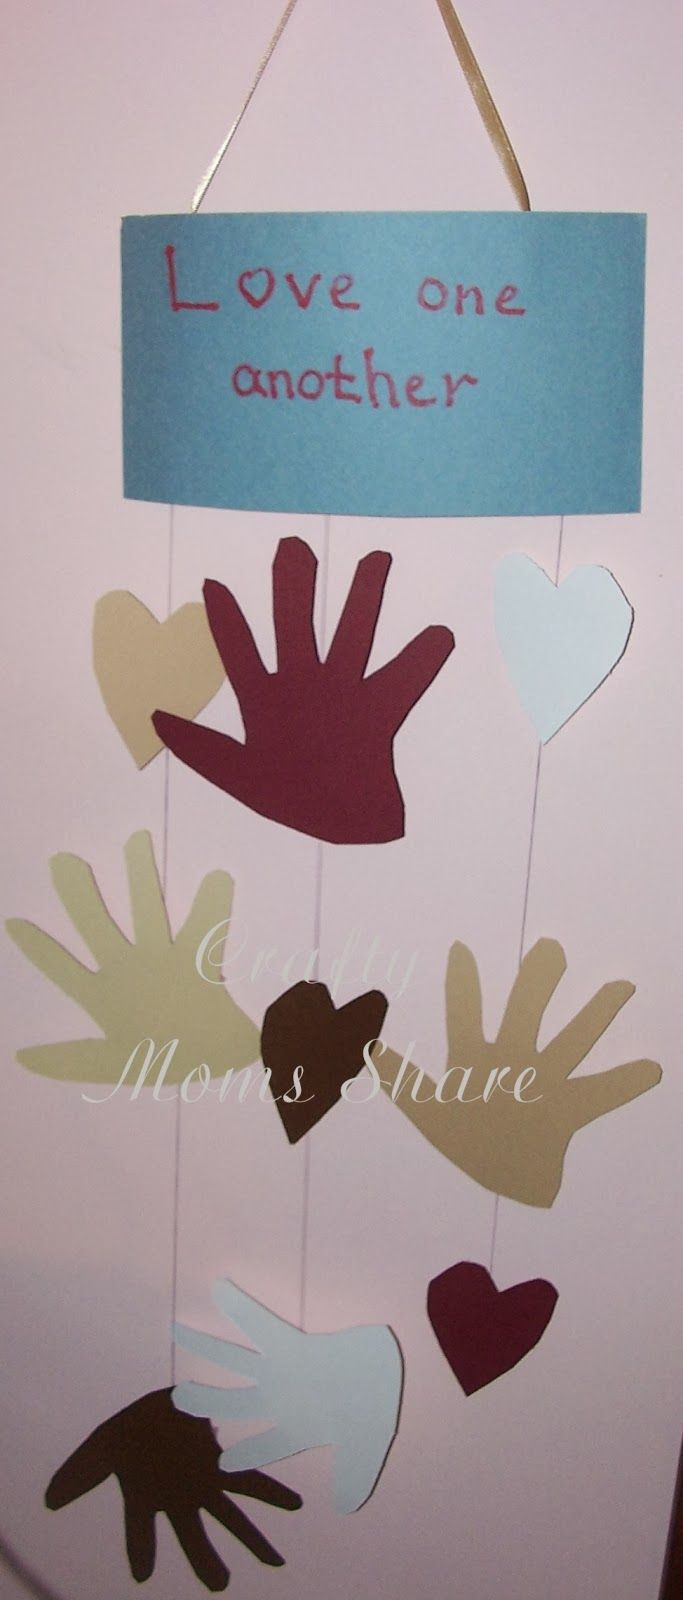 best ideas about martin luther king books martin crafty moms share martin luther king jr day books and crafts